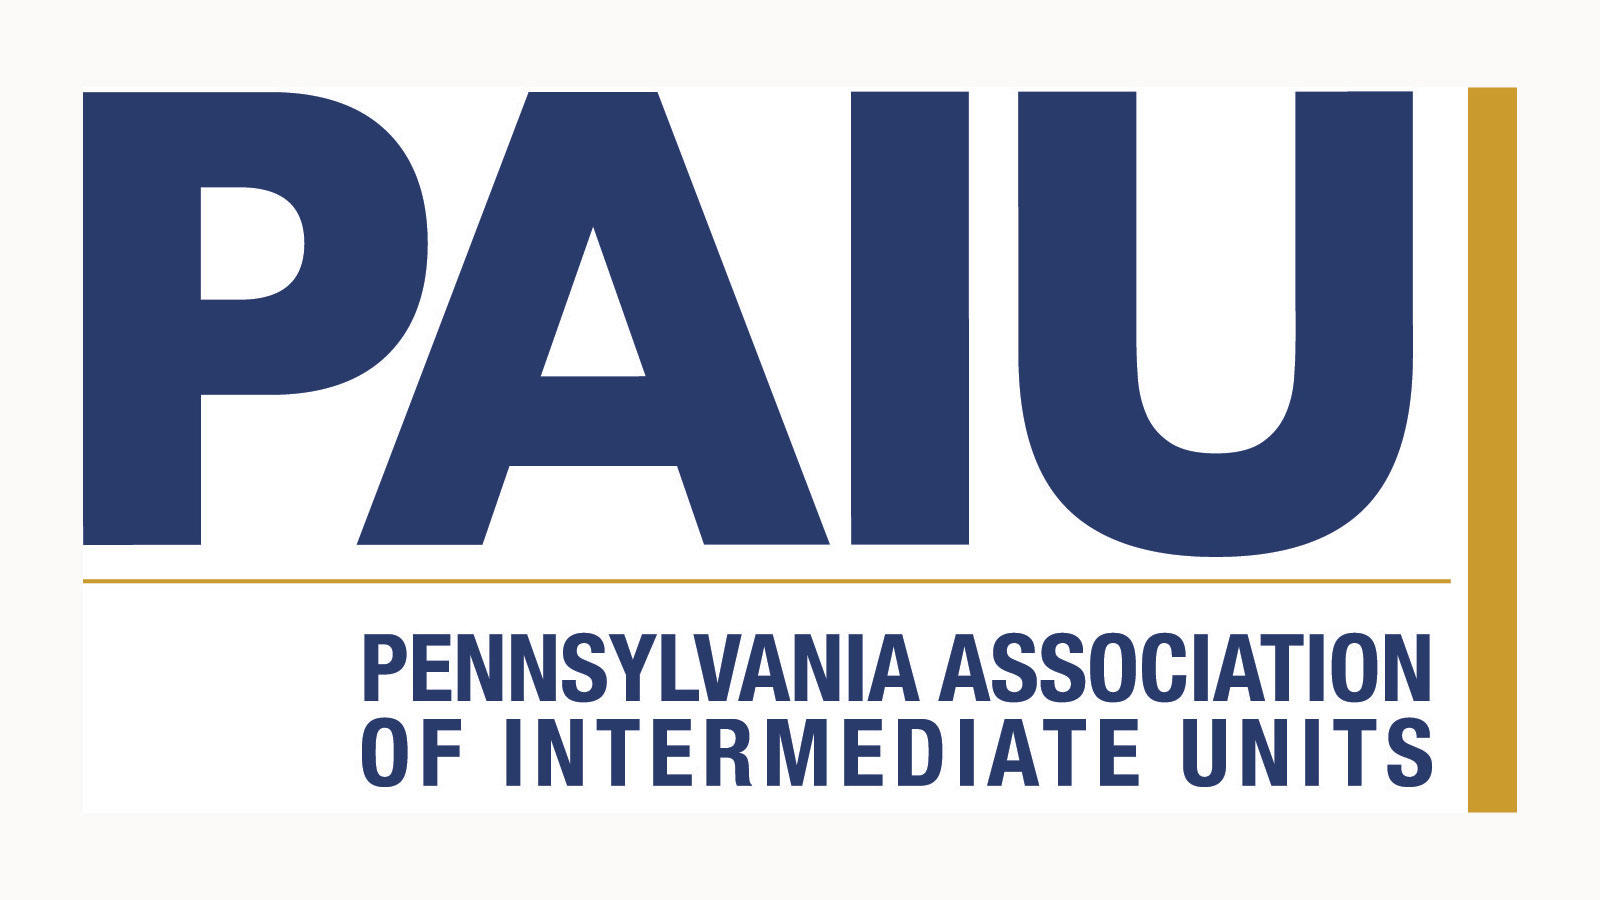 Pennsylvania Association of Intermediate Units Logo